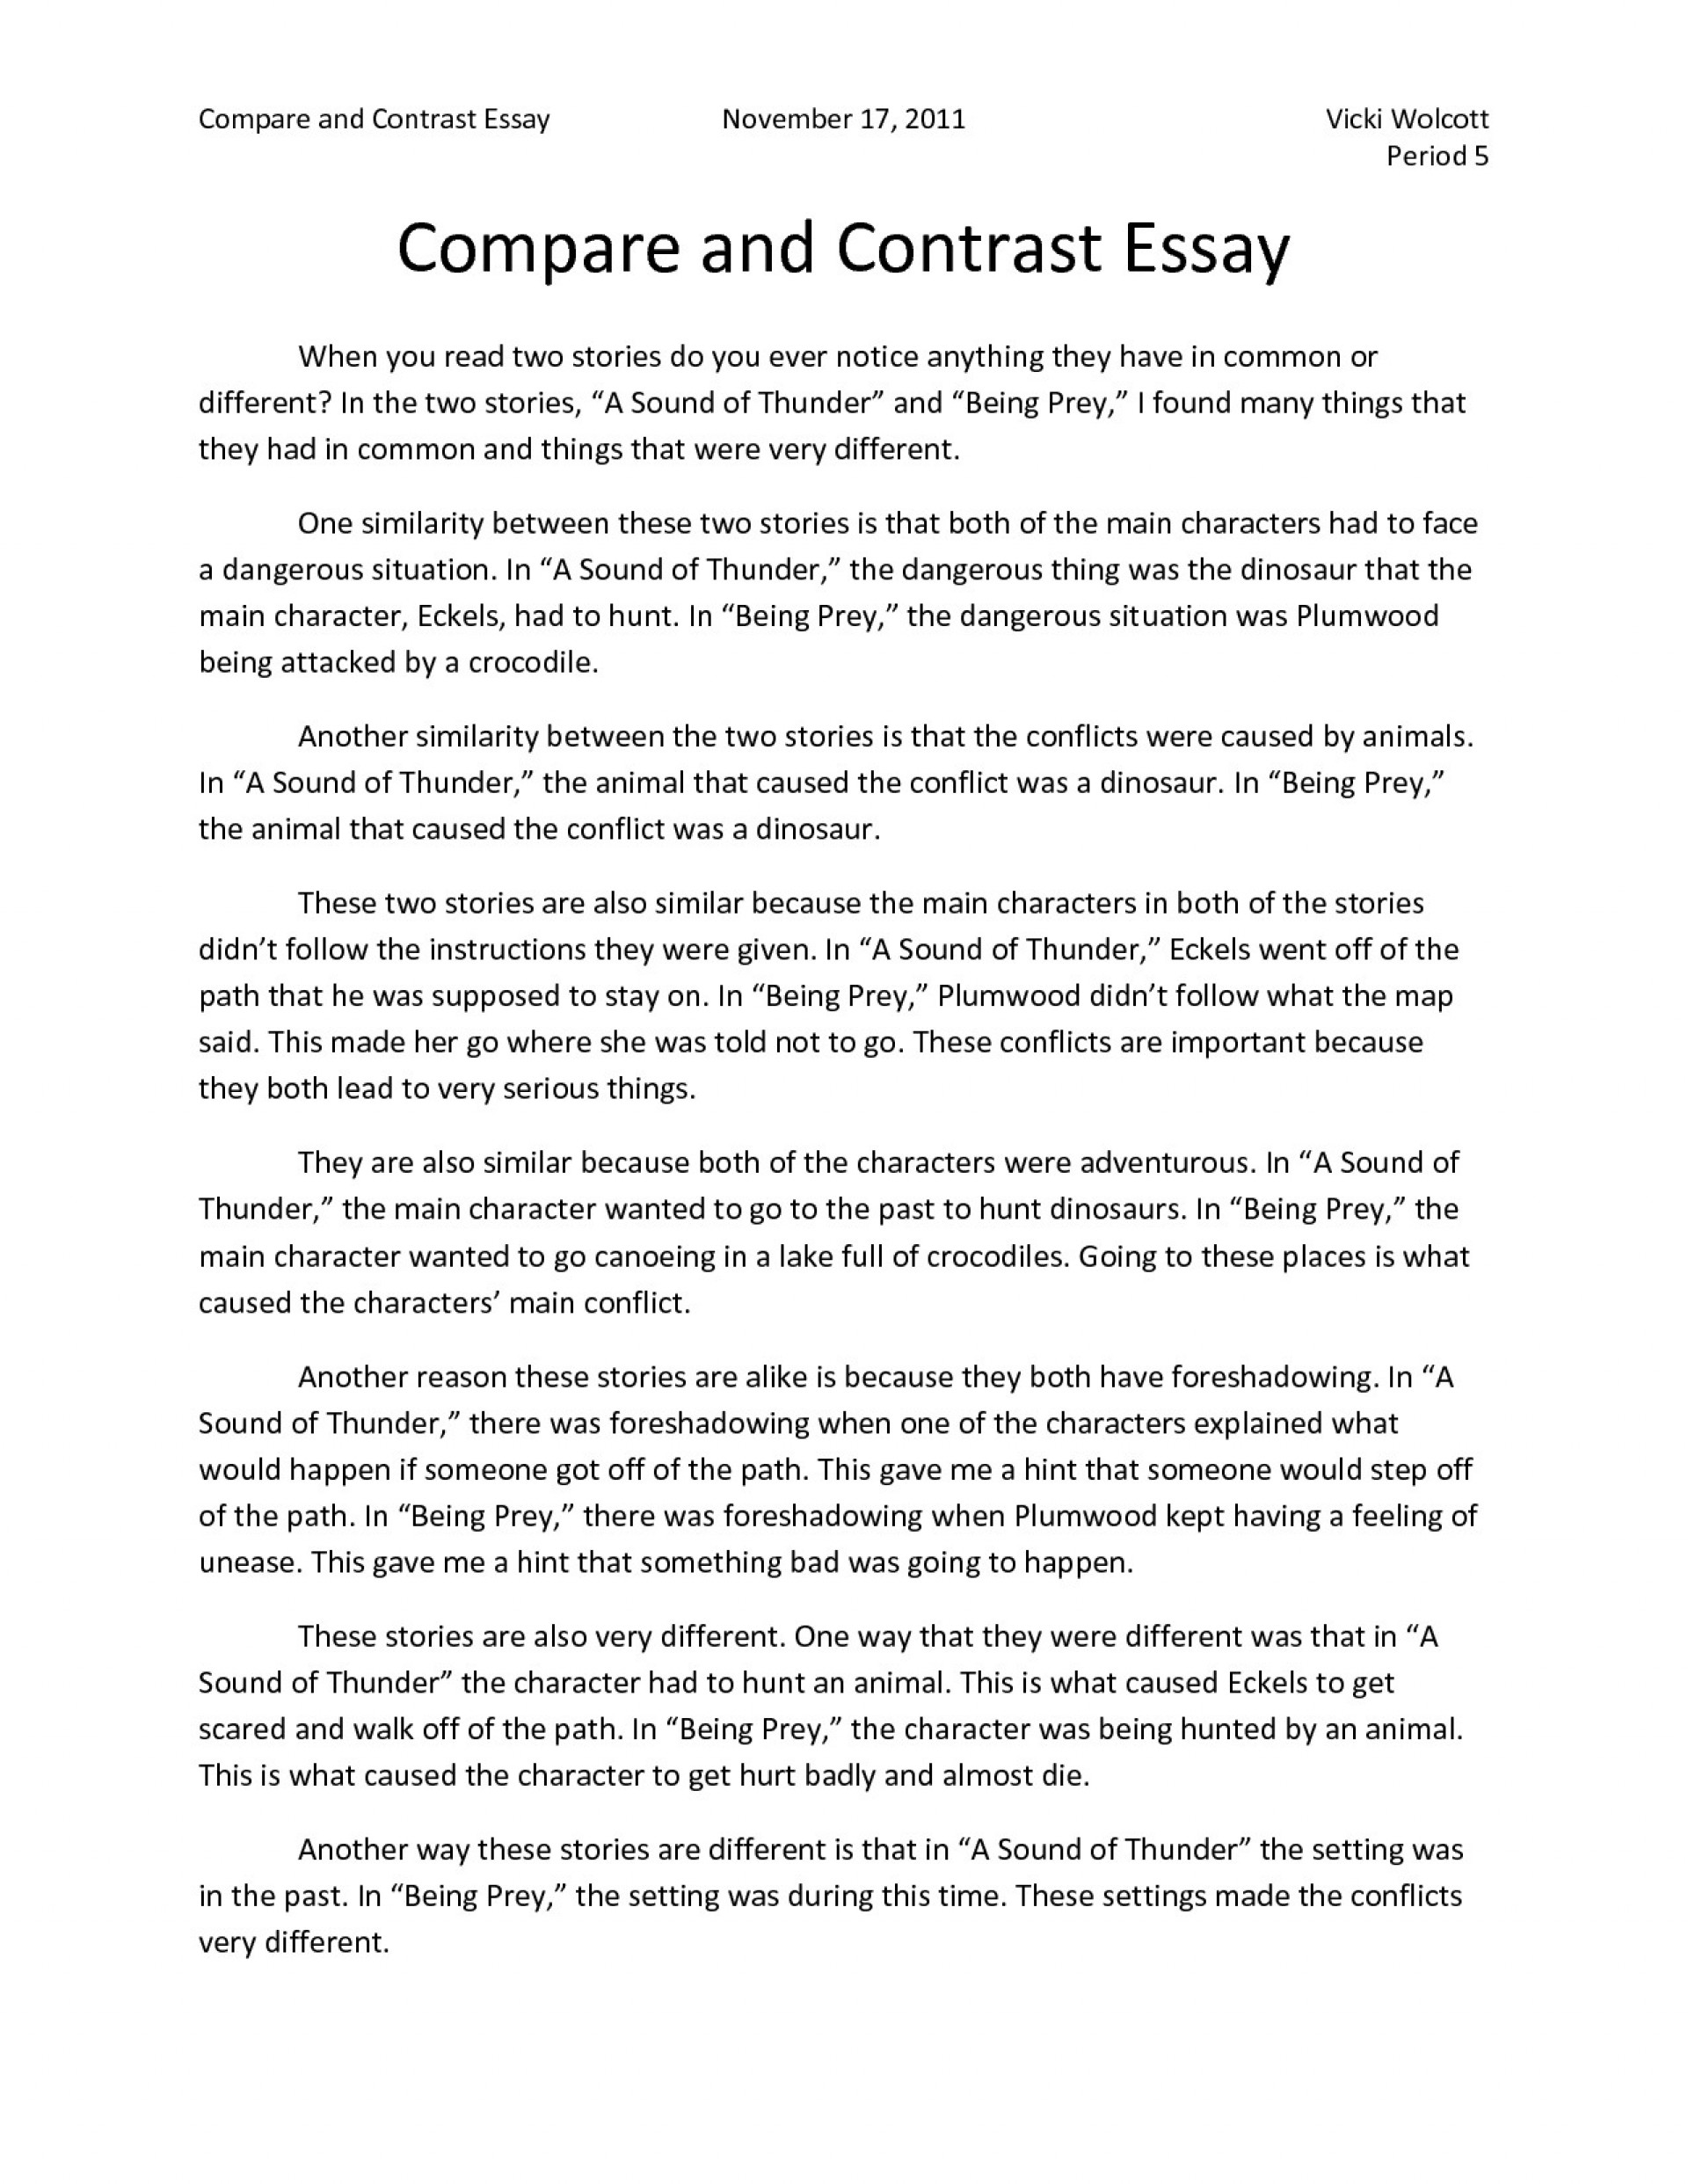 003 Essay Example Comparison And Contrast Essays Examples Ideas Maus Frightening Free Compare Pdf College 1920